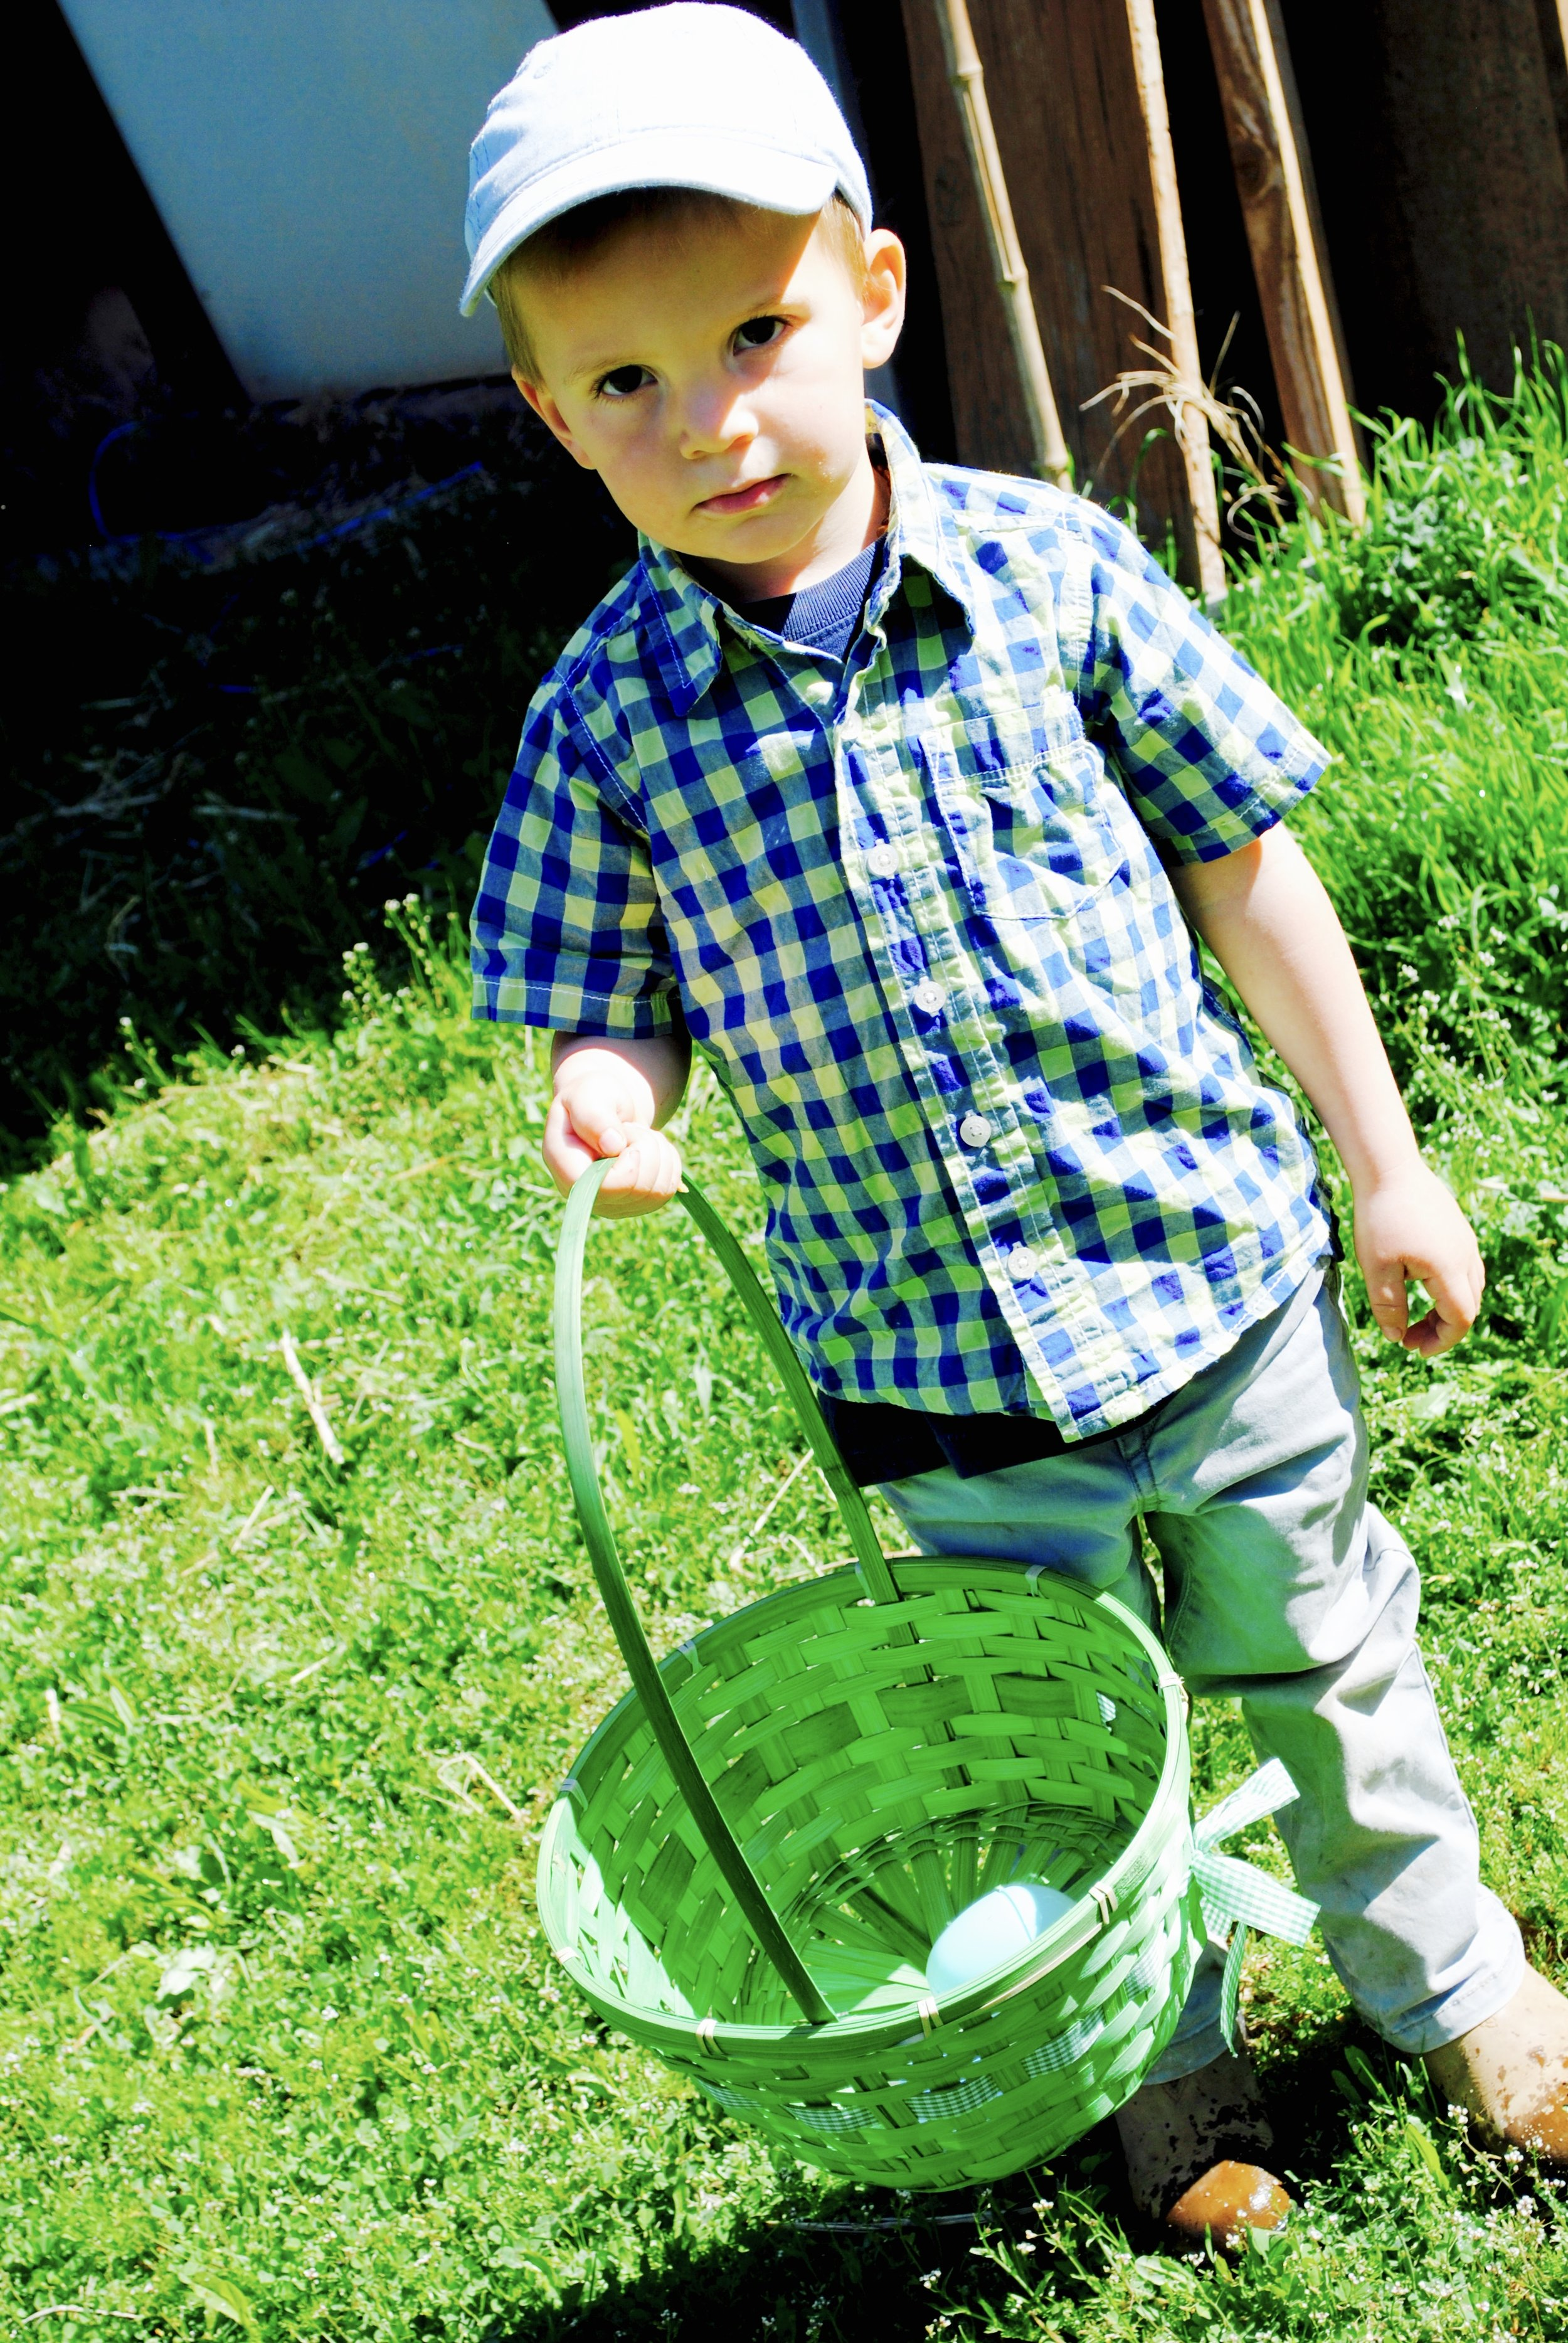 Nils pictured with his very first egg., apparently a serious matter.